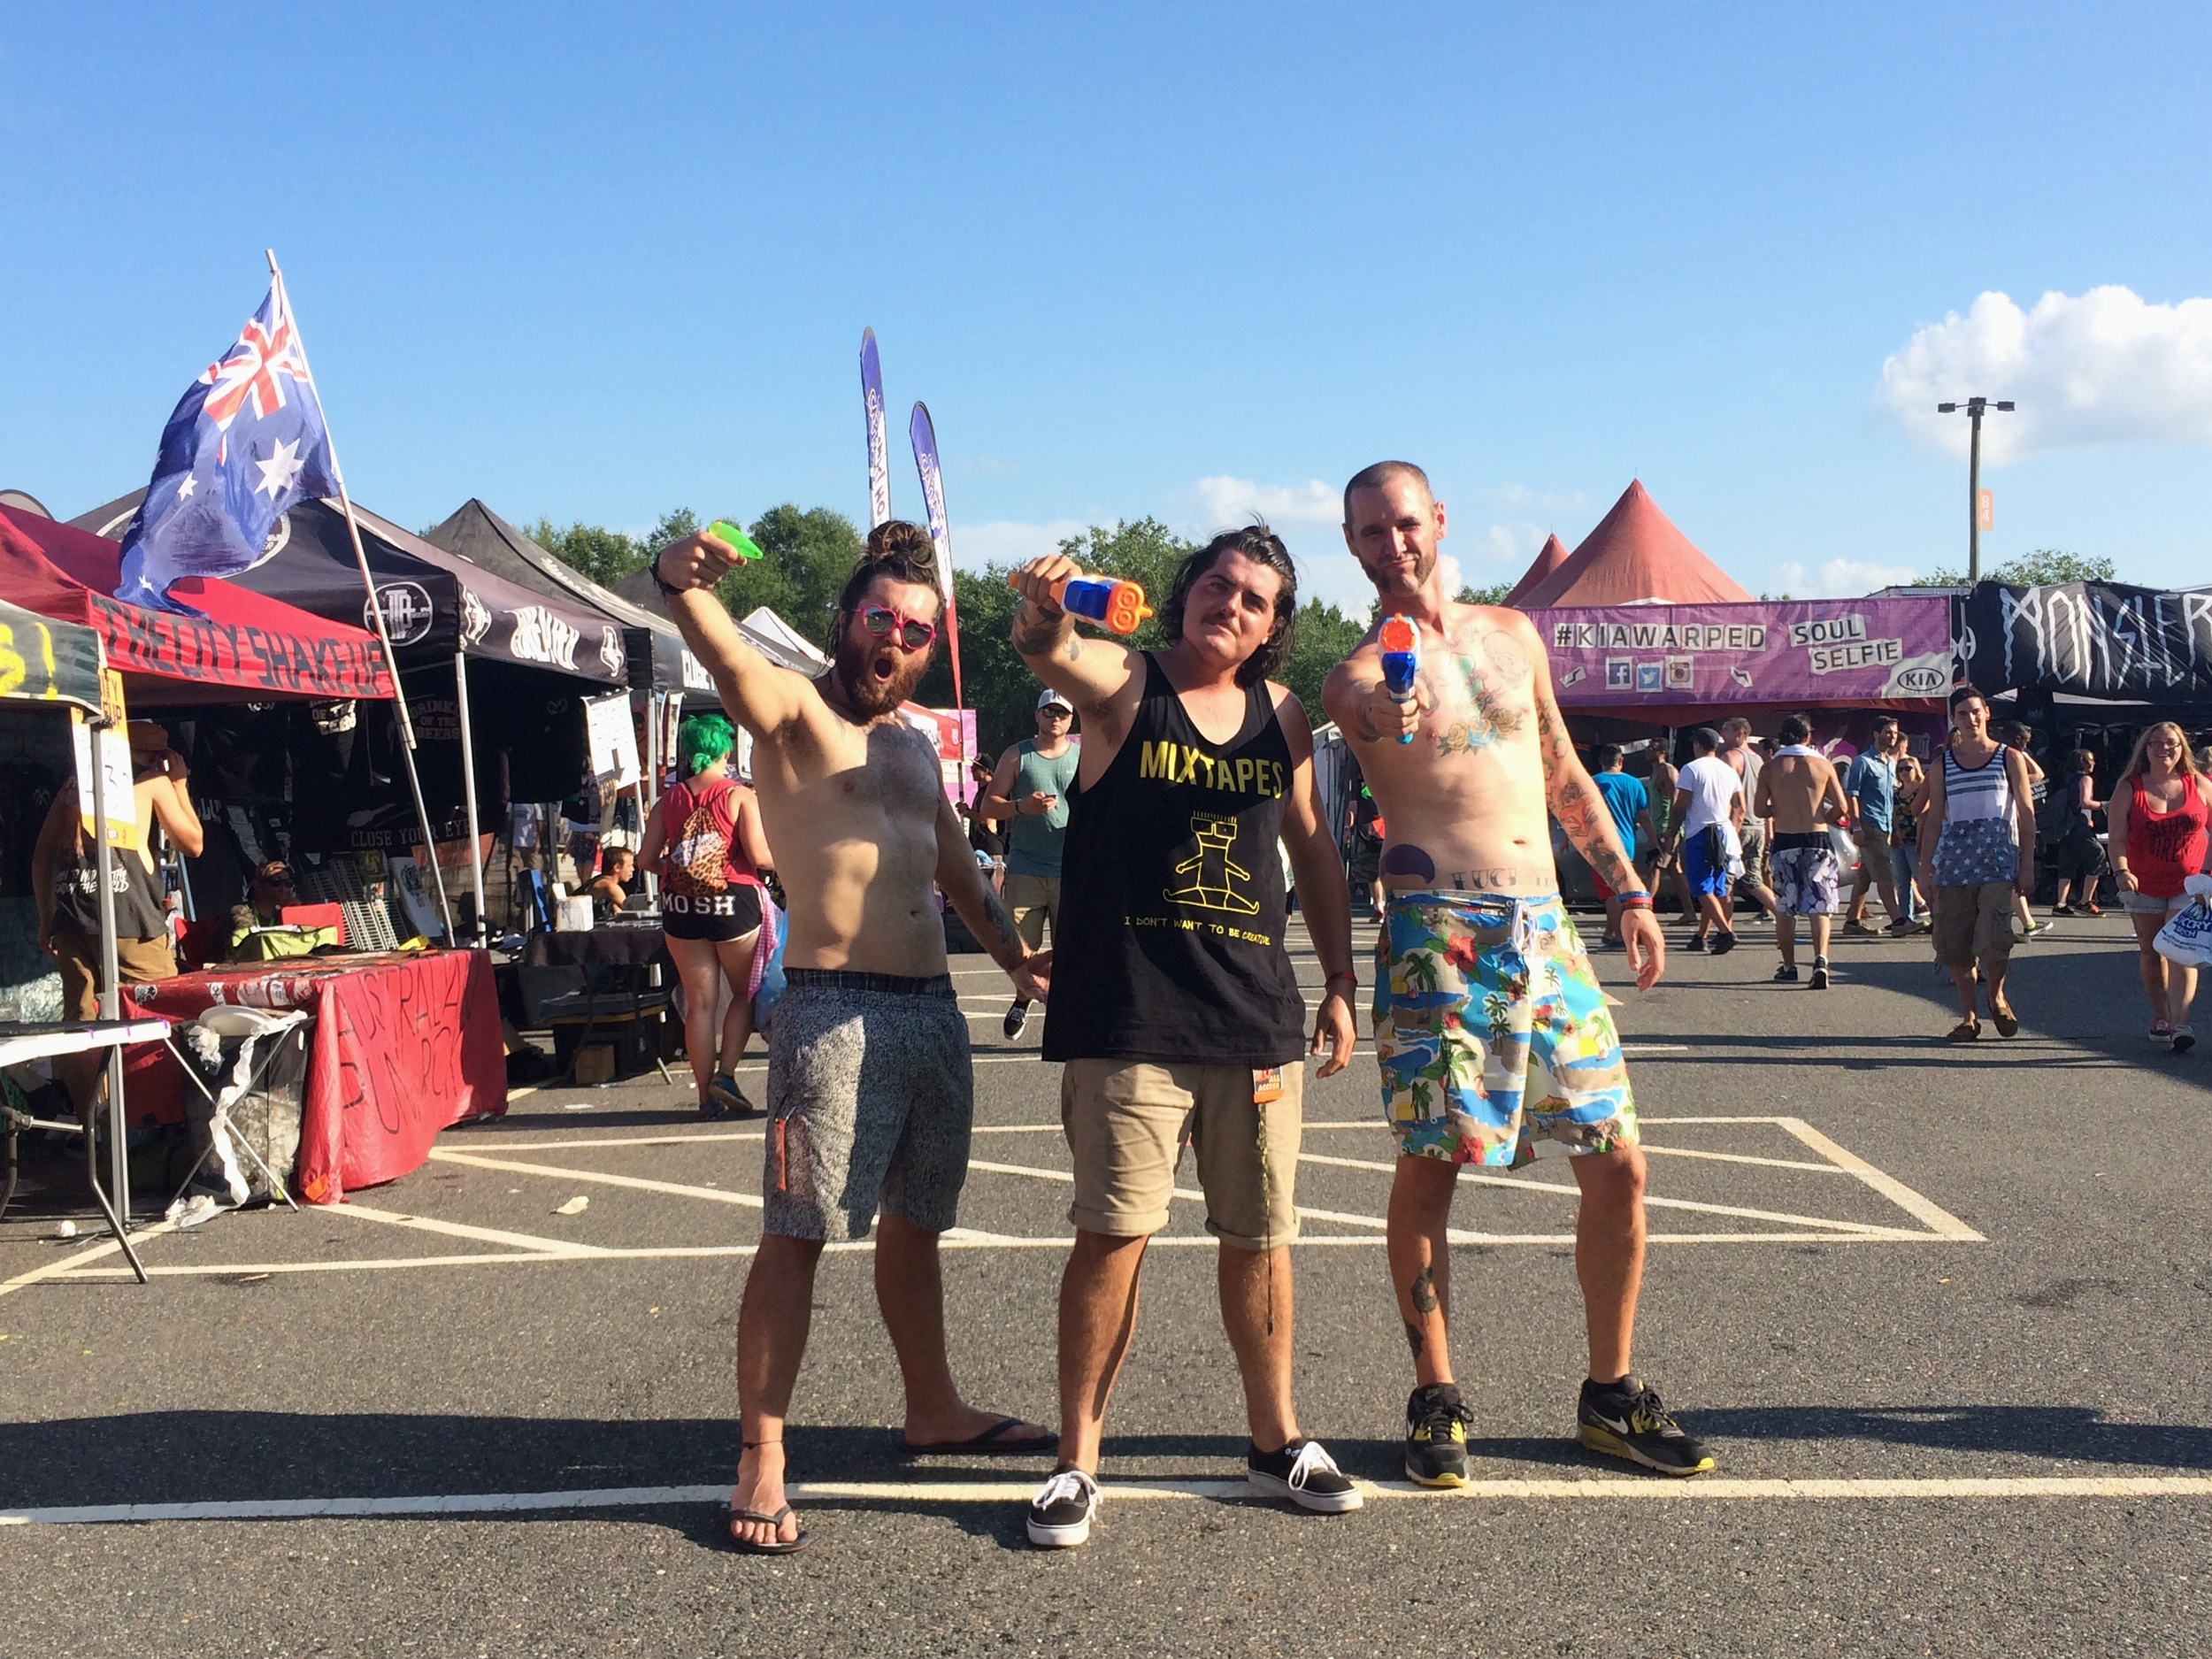 some of America's favorite merchies all losing our minds in the merch village in VIRGINIAAAAAH.